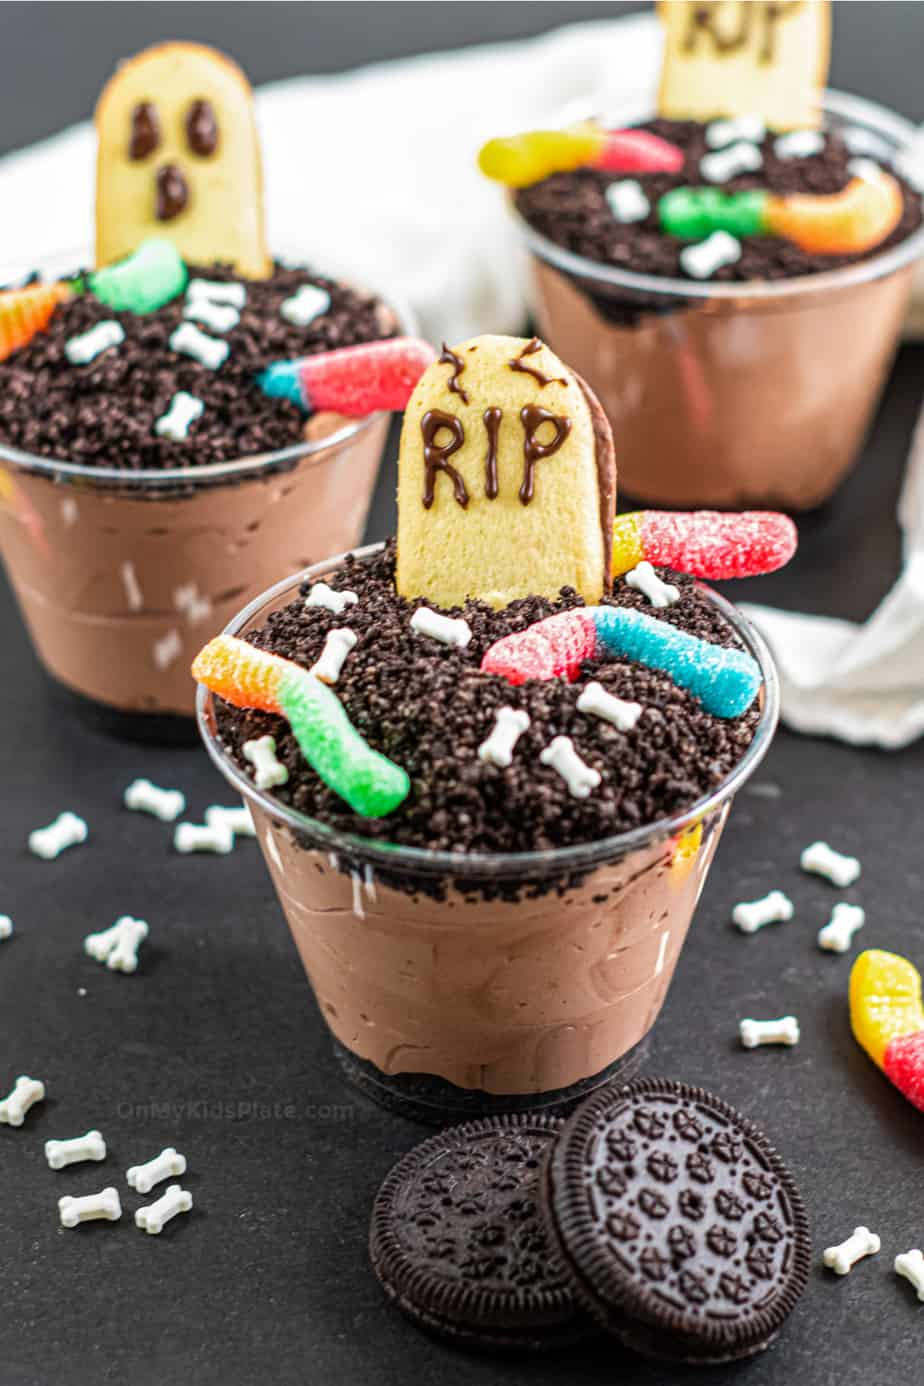 Three clear cups filled with pudding, topped with Oreo crumbs and tombstone and ghost shaped cookies.